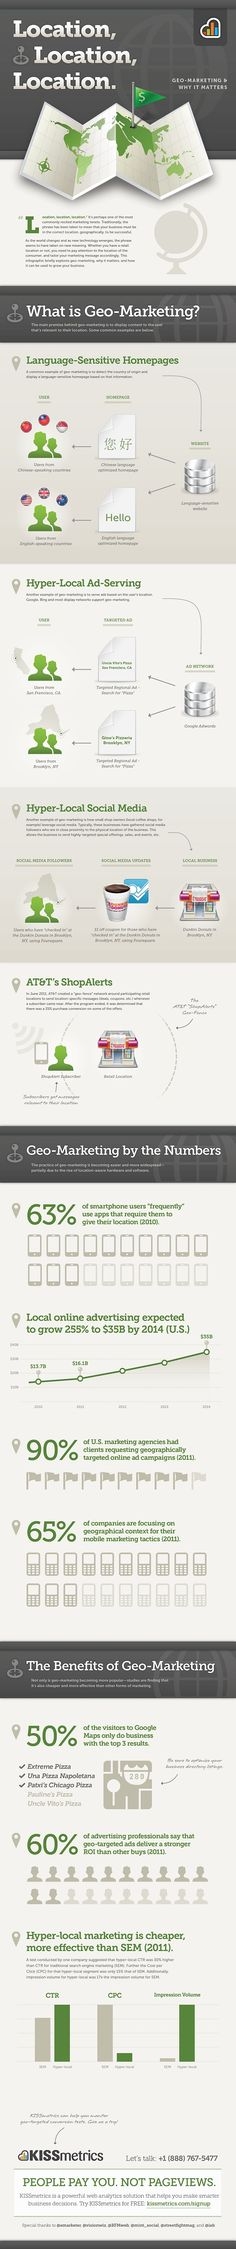 LOCATION, LOCATION, LOCATION - GEO-MARKETING & WHY IT MATTERS  Infographic & article  Whether you have a retail location or not, you need to pay attention to the location of the consumer, and tailor your marketing message accordingly. Good information and suggestions.